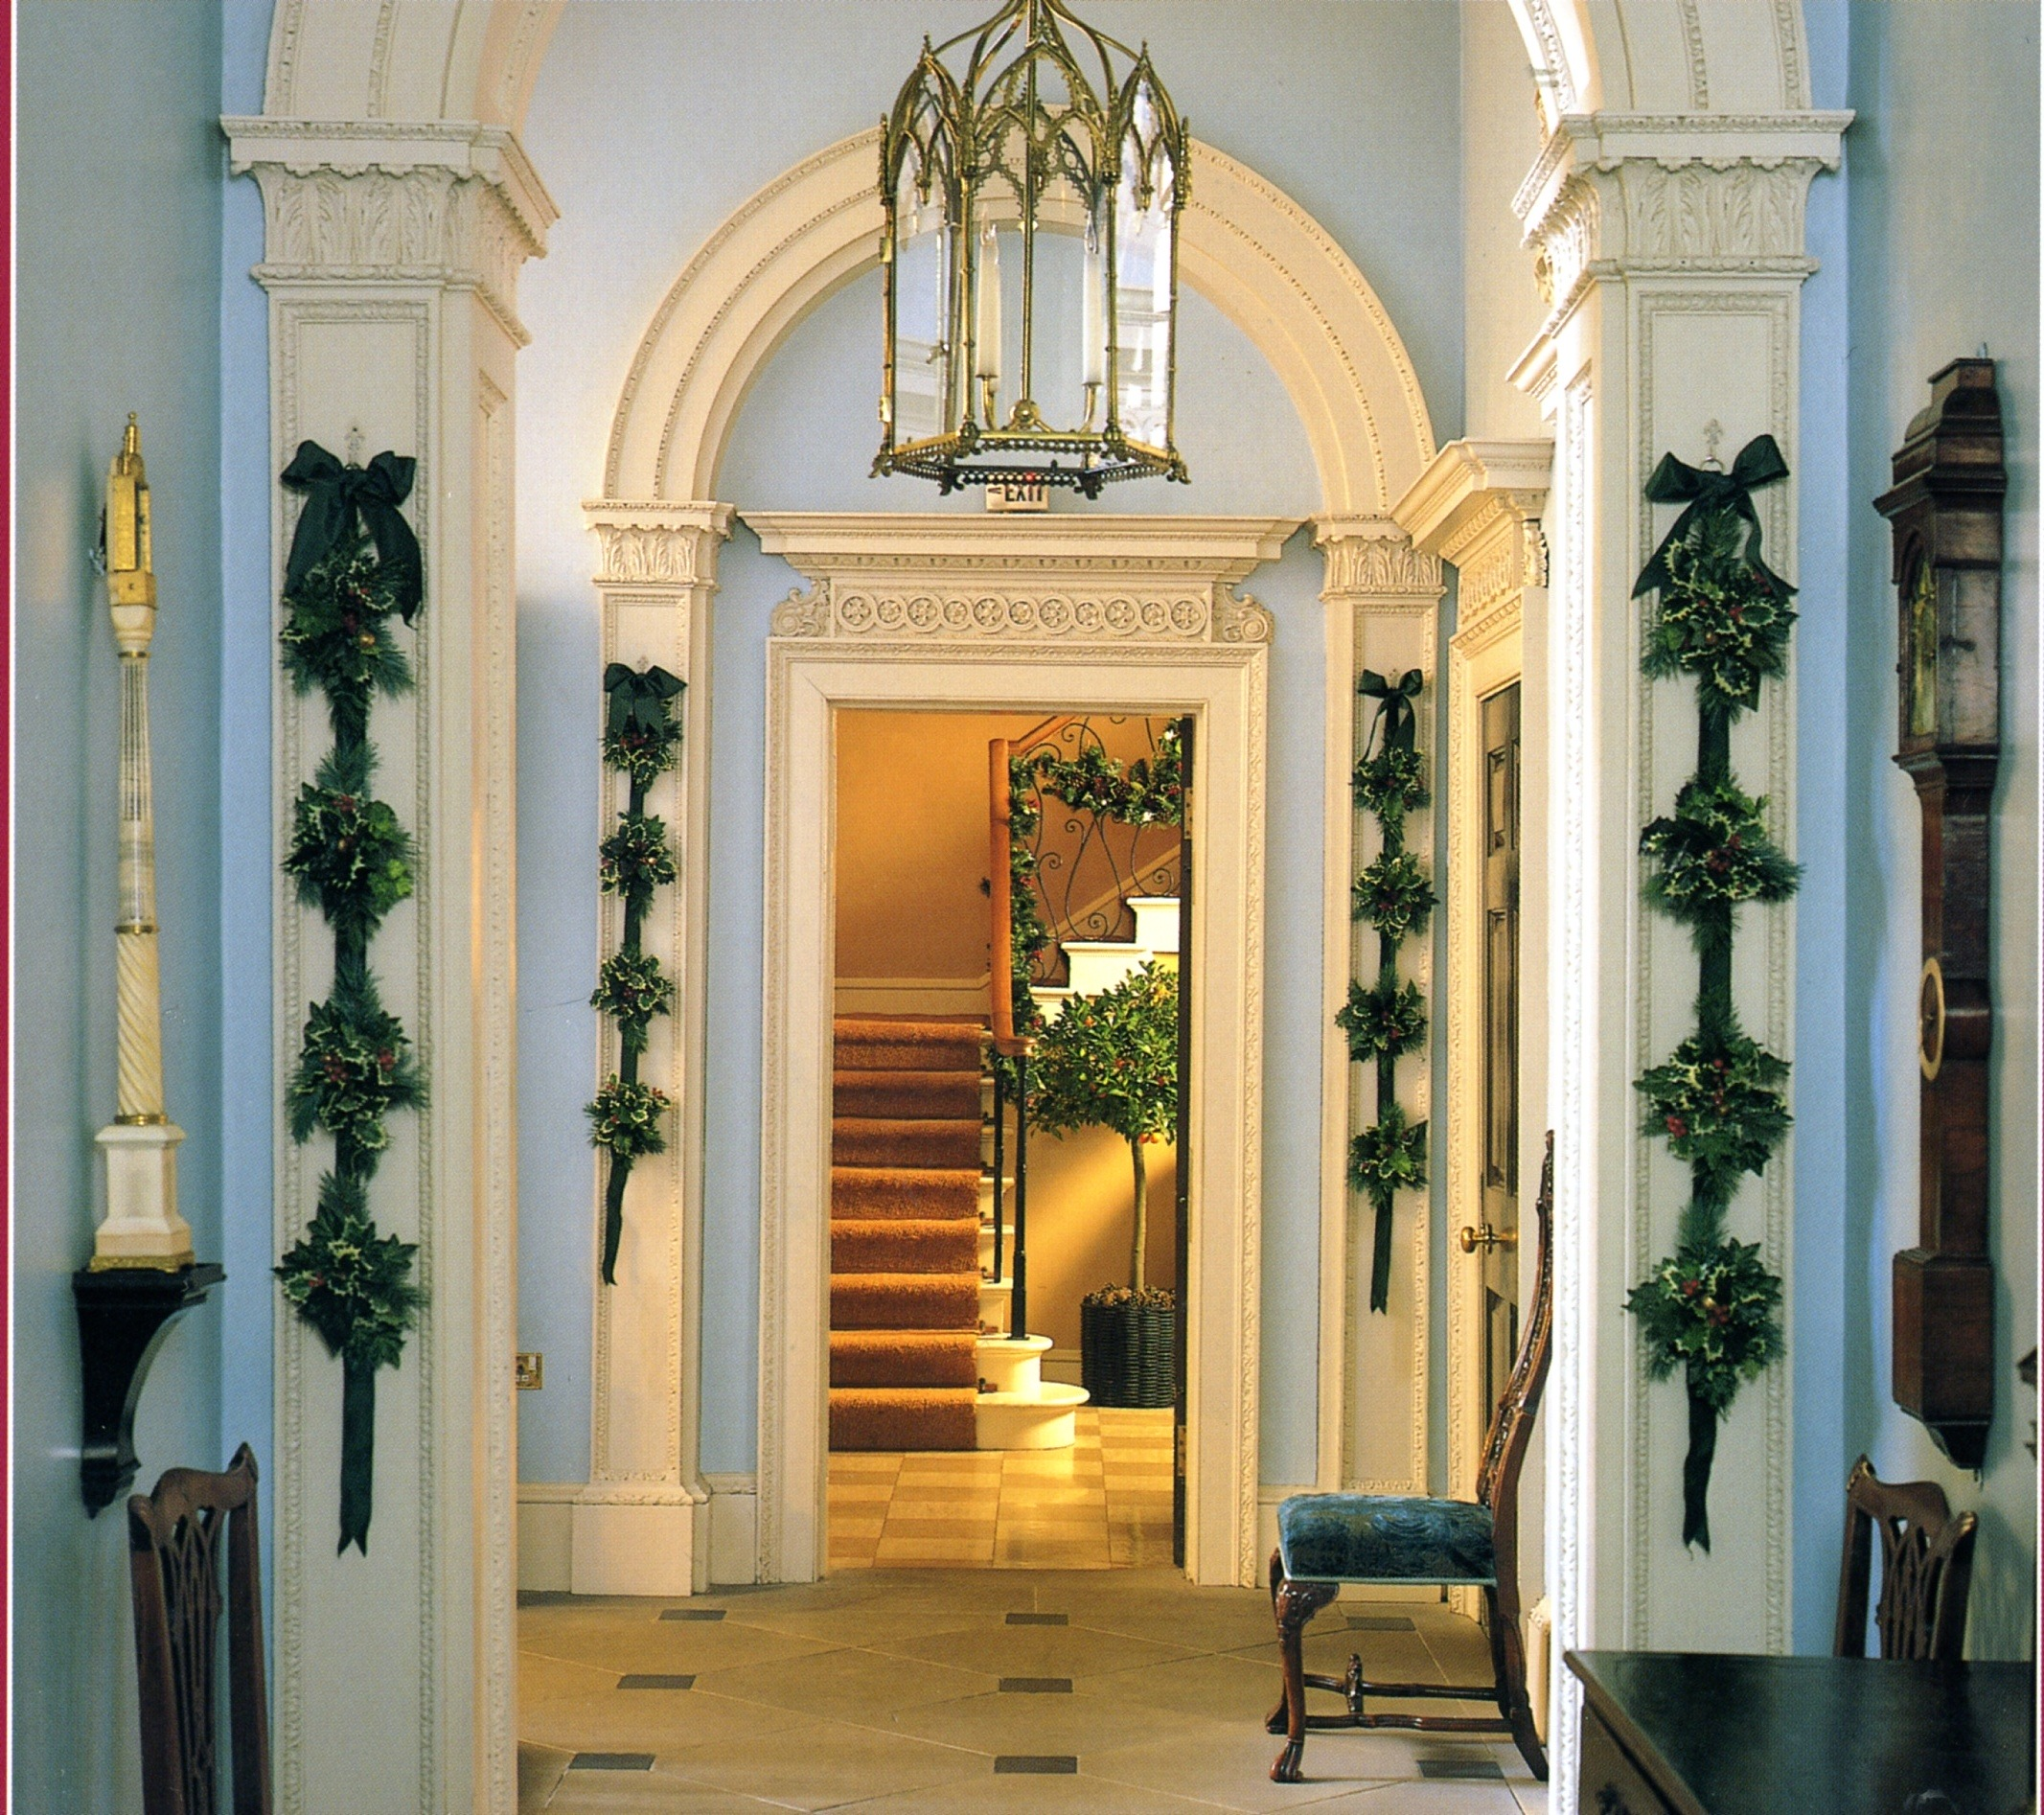 foyer-blue-white-trim-greenery-holiday-christmas-decorating-traditional-interior-design-fairfax-house-in-york